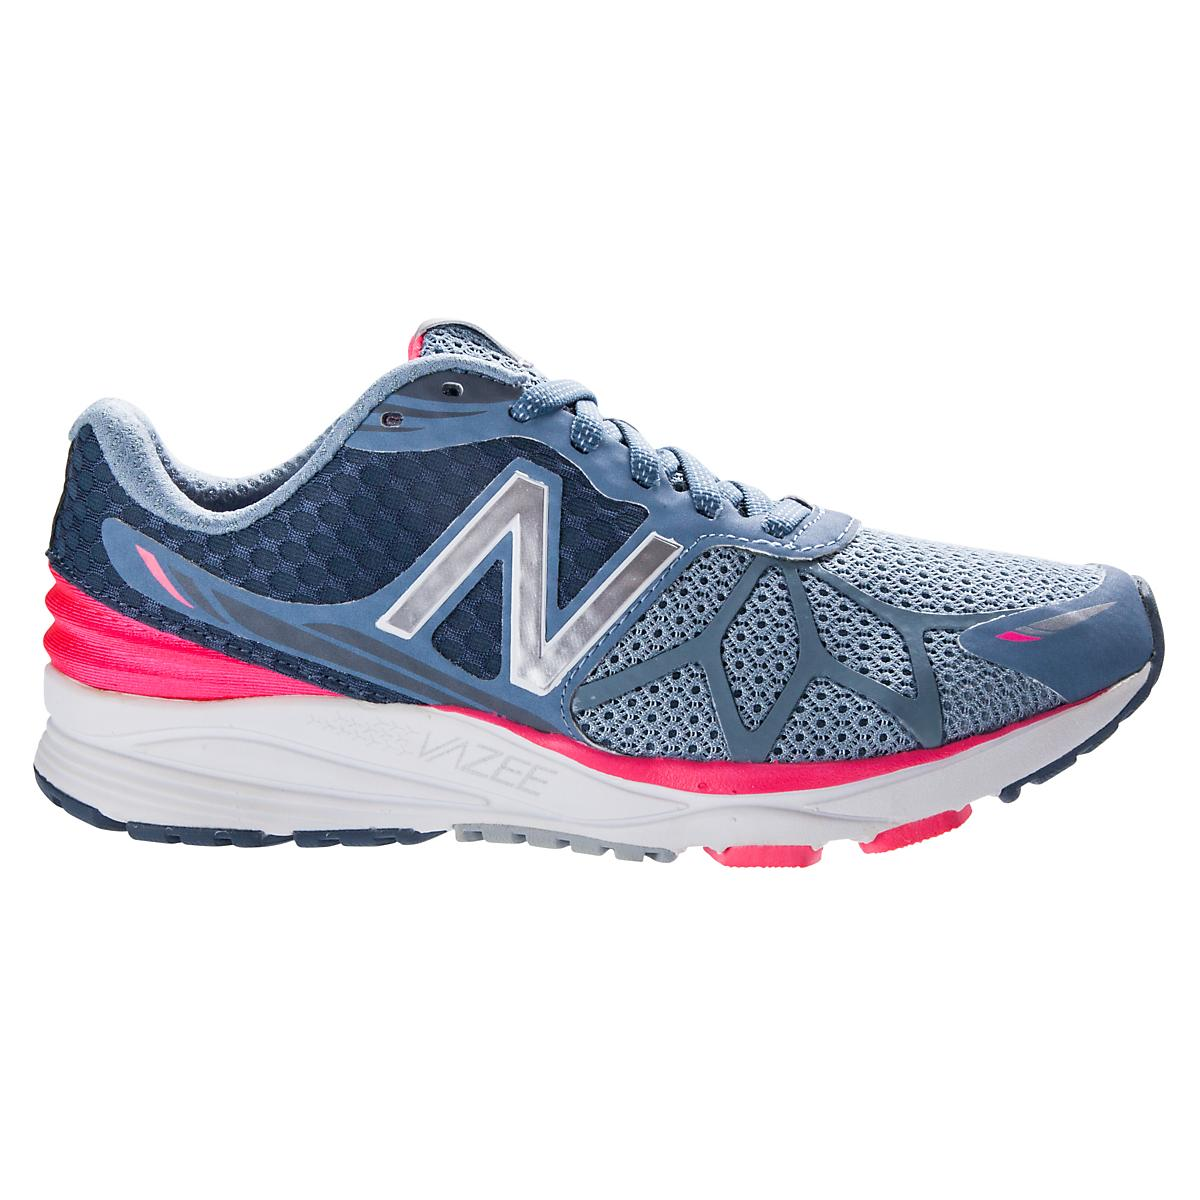 websites online hot sale online New Balance Women's Vazee Pace R... low cost cheap price clearance best wholesale discount official wzsnW